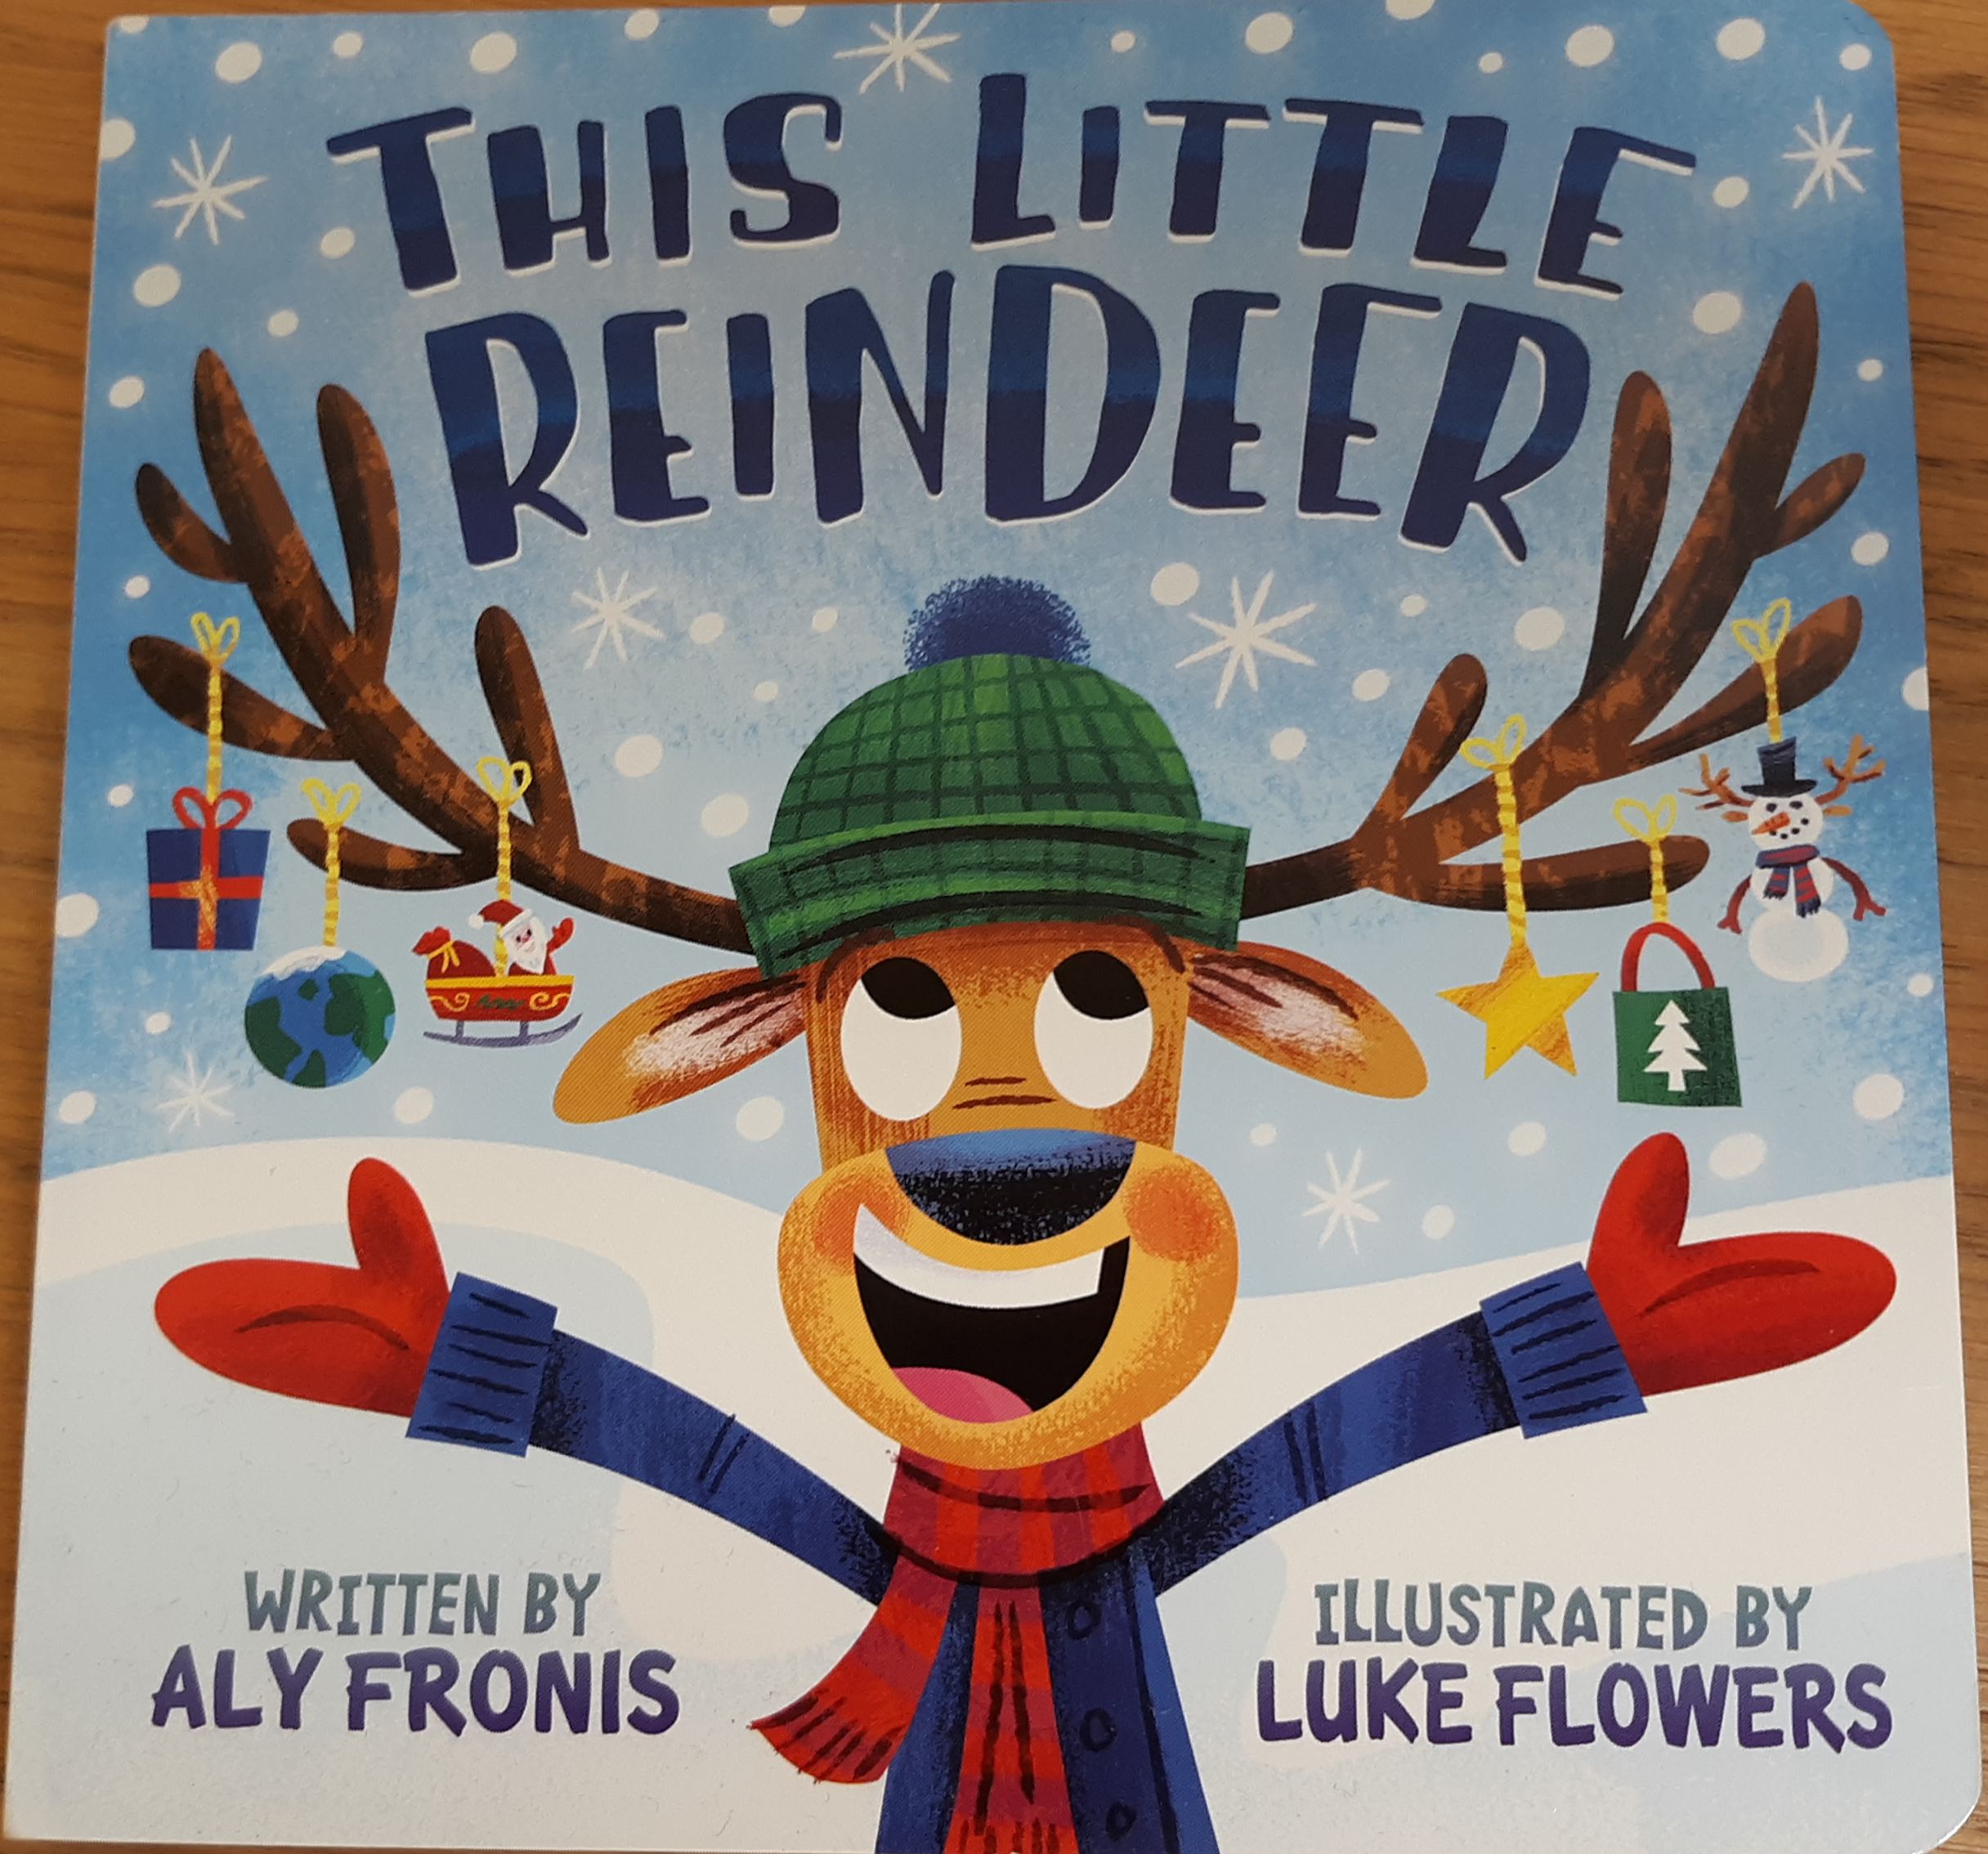 https://0201.nccdn.net/1_2/000/000/0ec/b18/the-little-reindeer.png